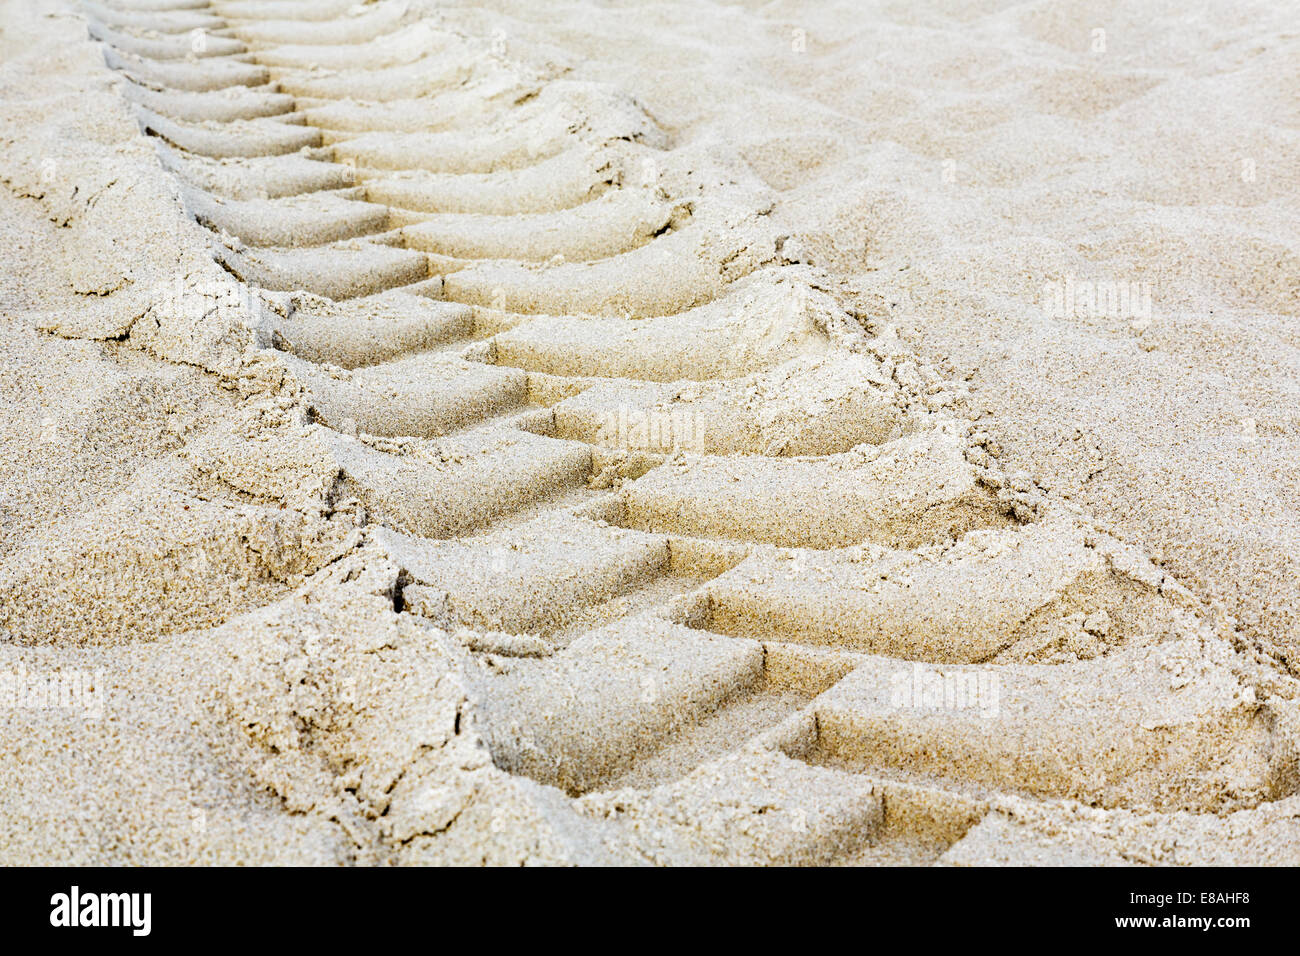 Tractor tires footprint - Stock Image